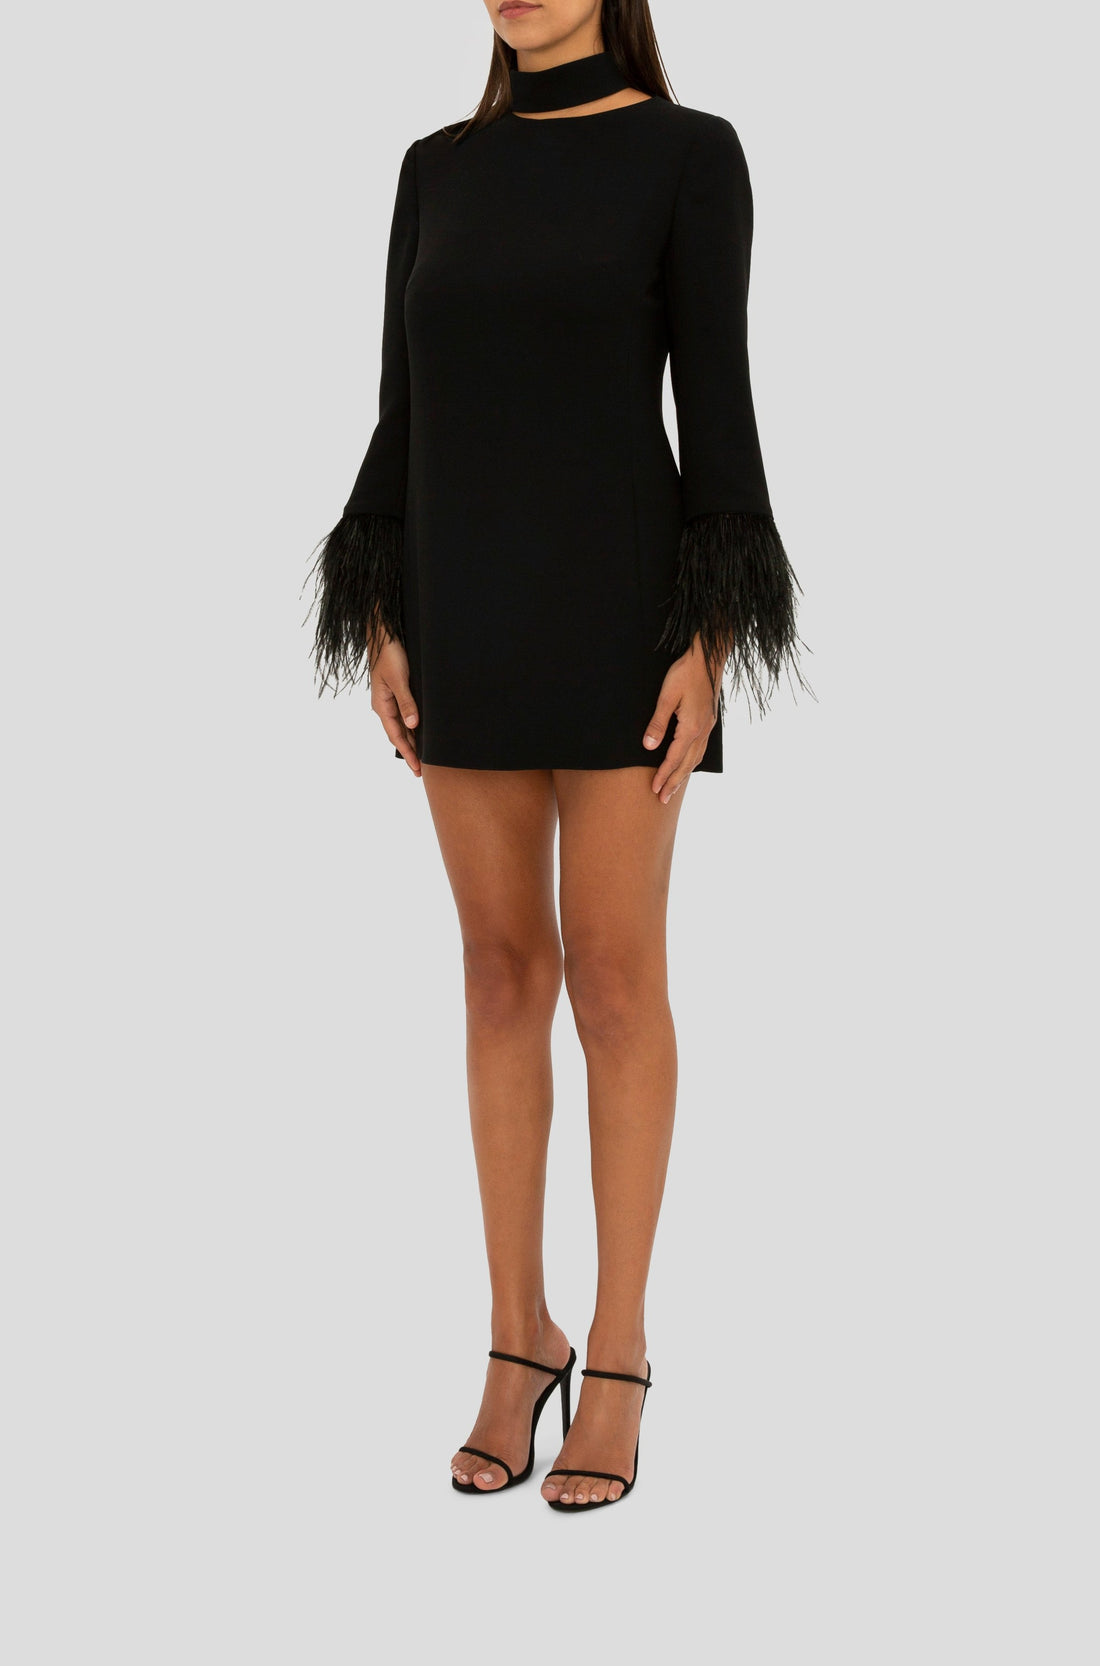 BLACK FEATHER TRIM MINI DRESS